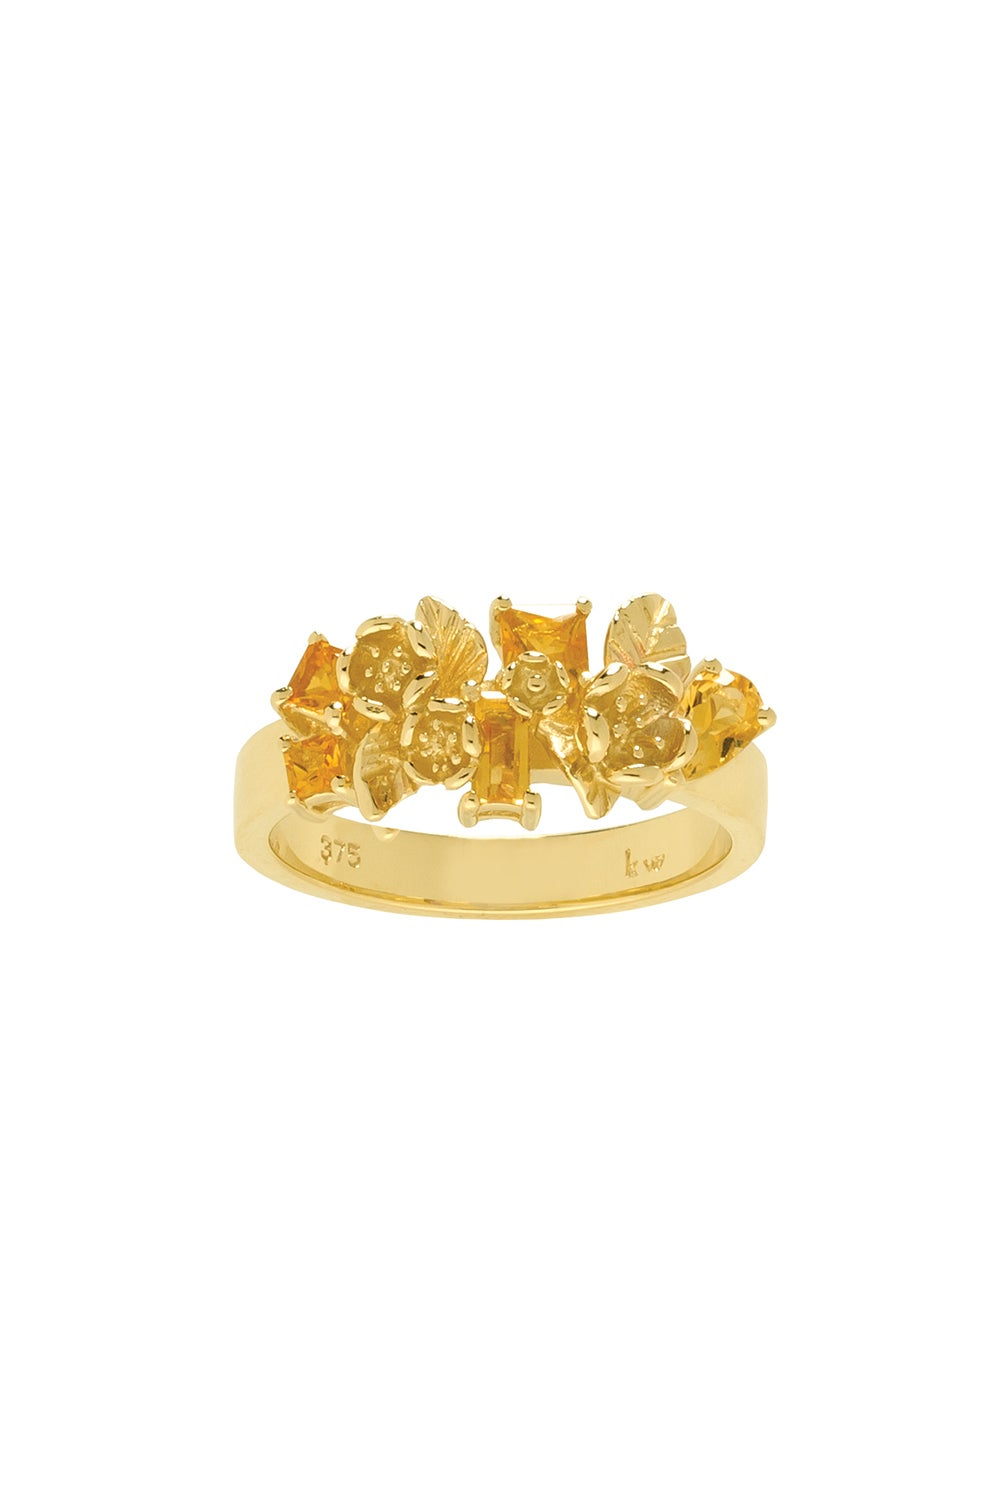 Rock Garden Flowers Ring Gold & Citrine